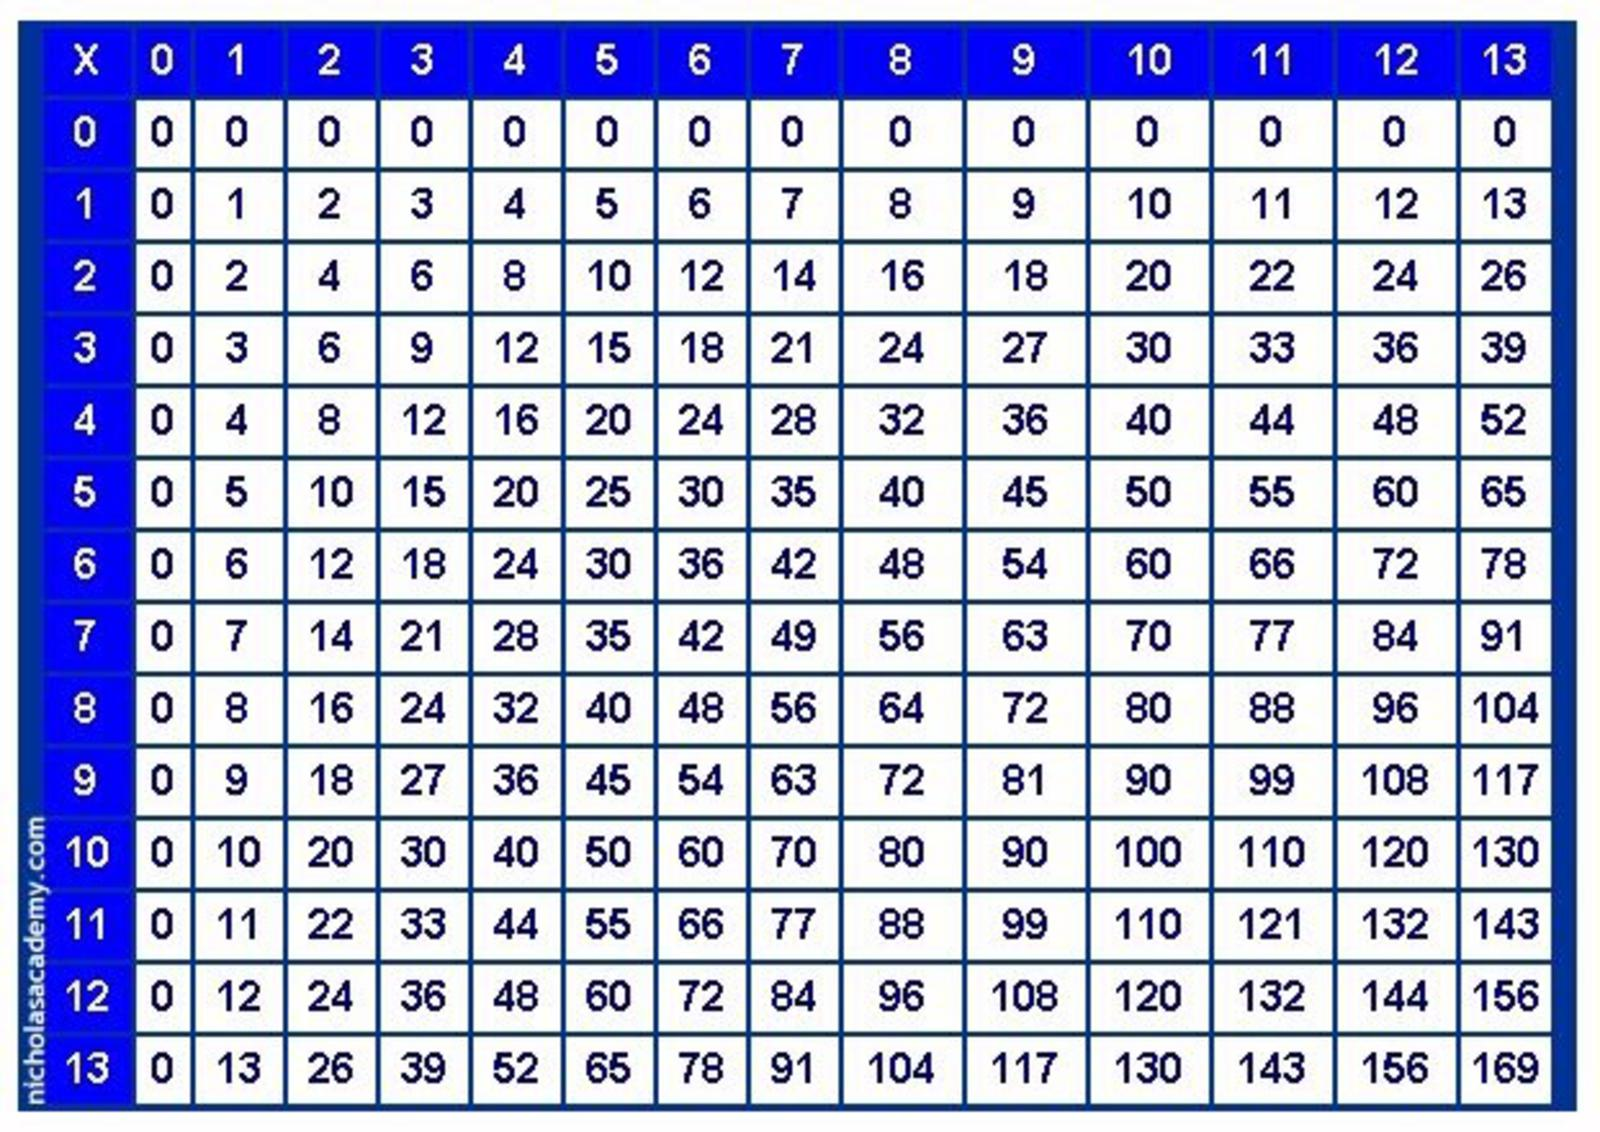 20 By 20 Multiplication Chart Printable - Reocurent